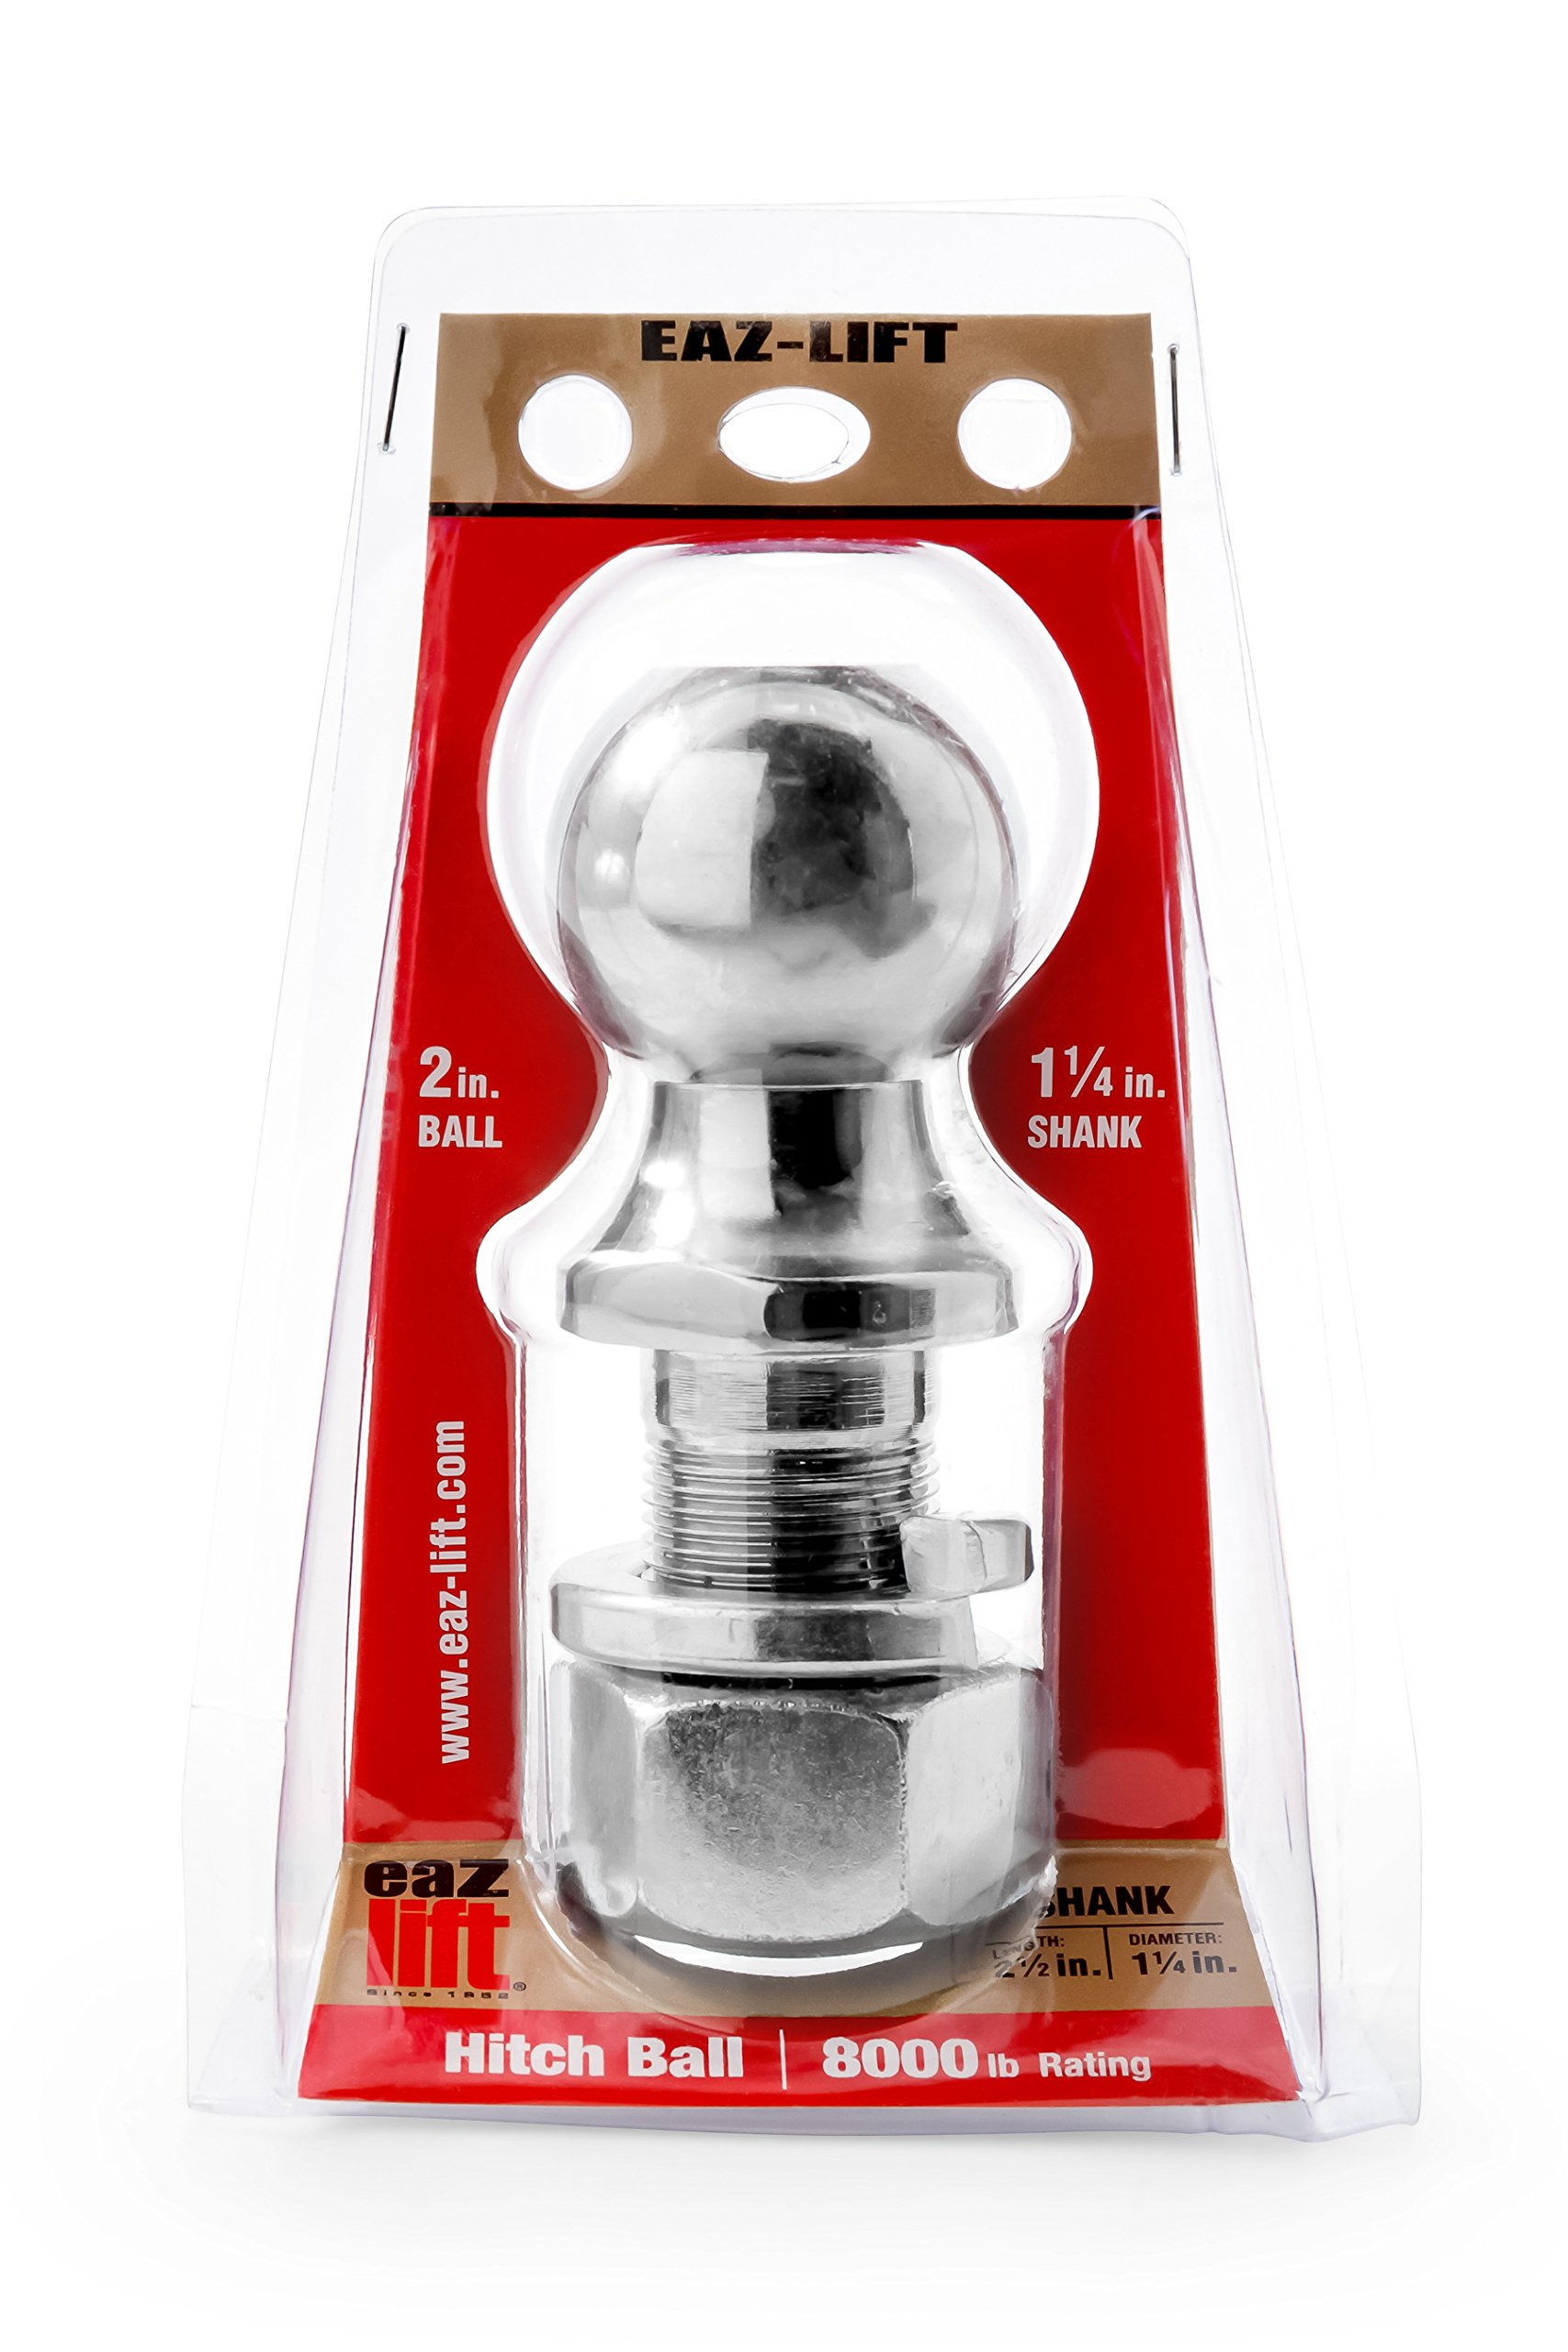 Eaz-Lift 48226 2'' Hitch Ball with 1 1/4'' Shank -Chrome Plated Heavy Duty Steel 8,000 lb Rating